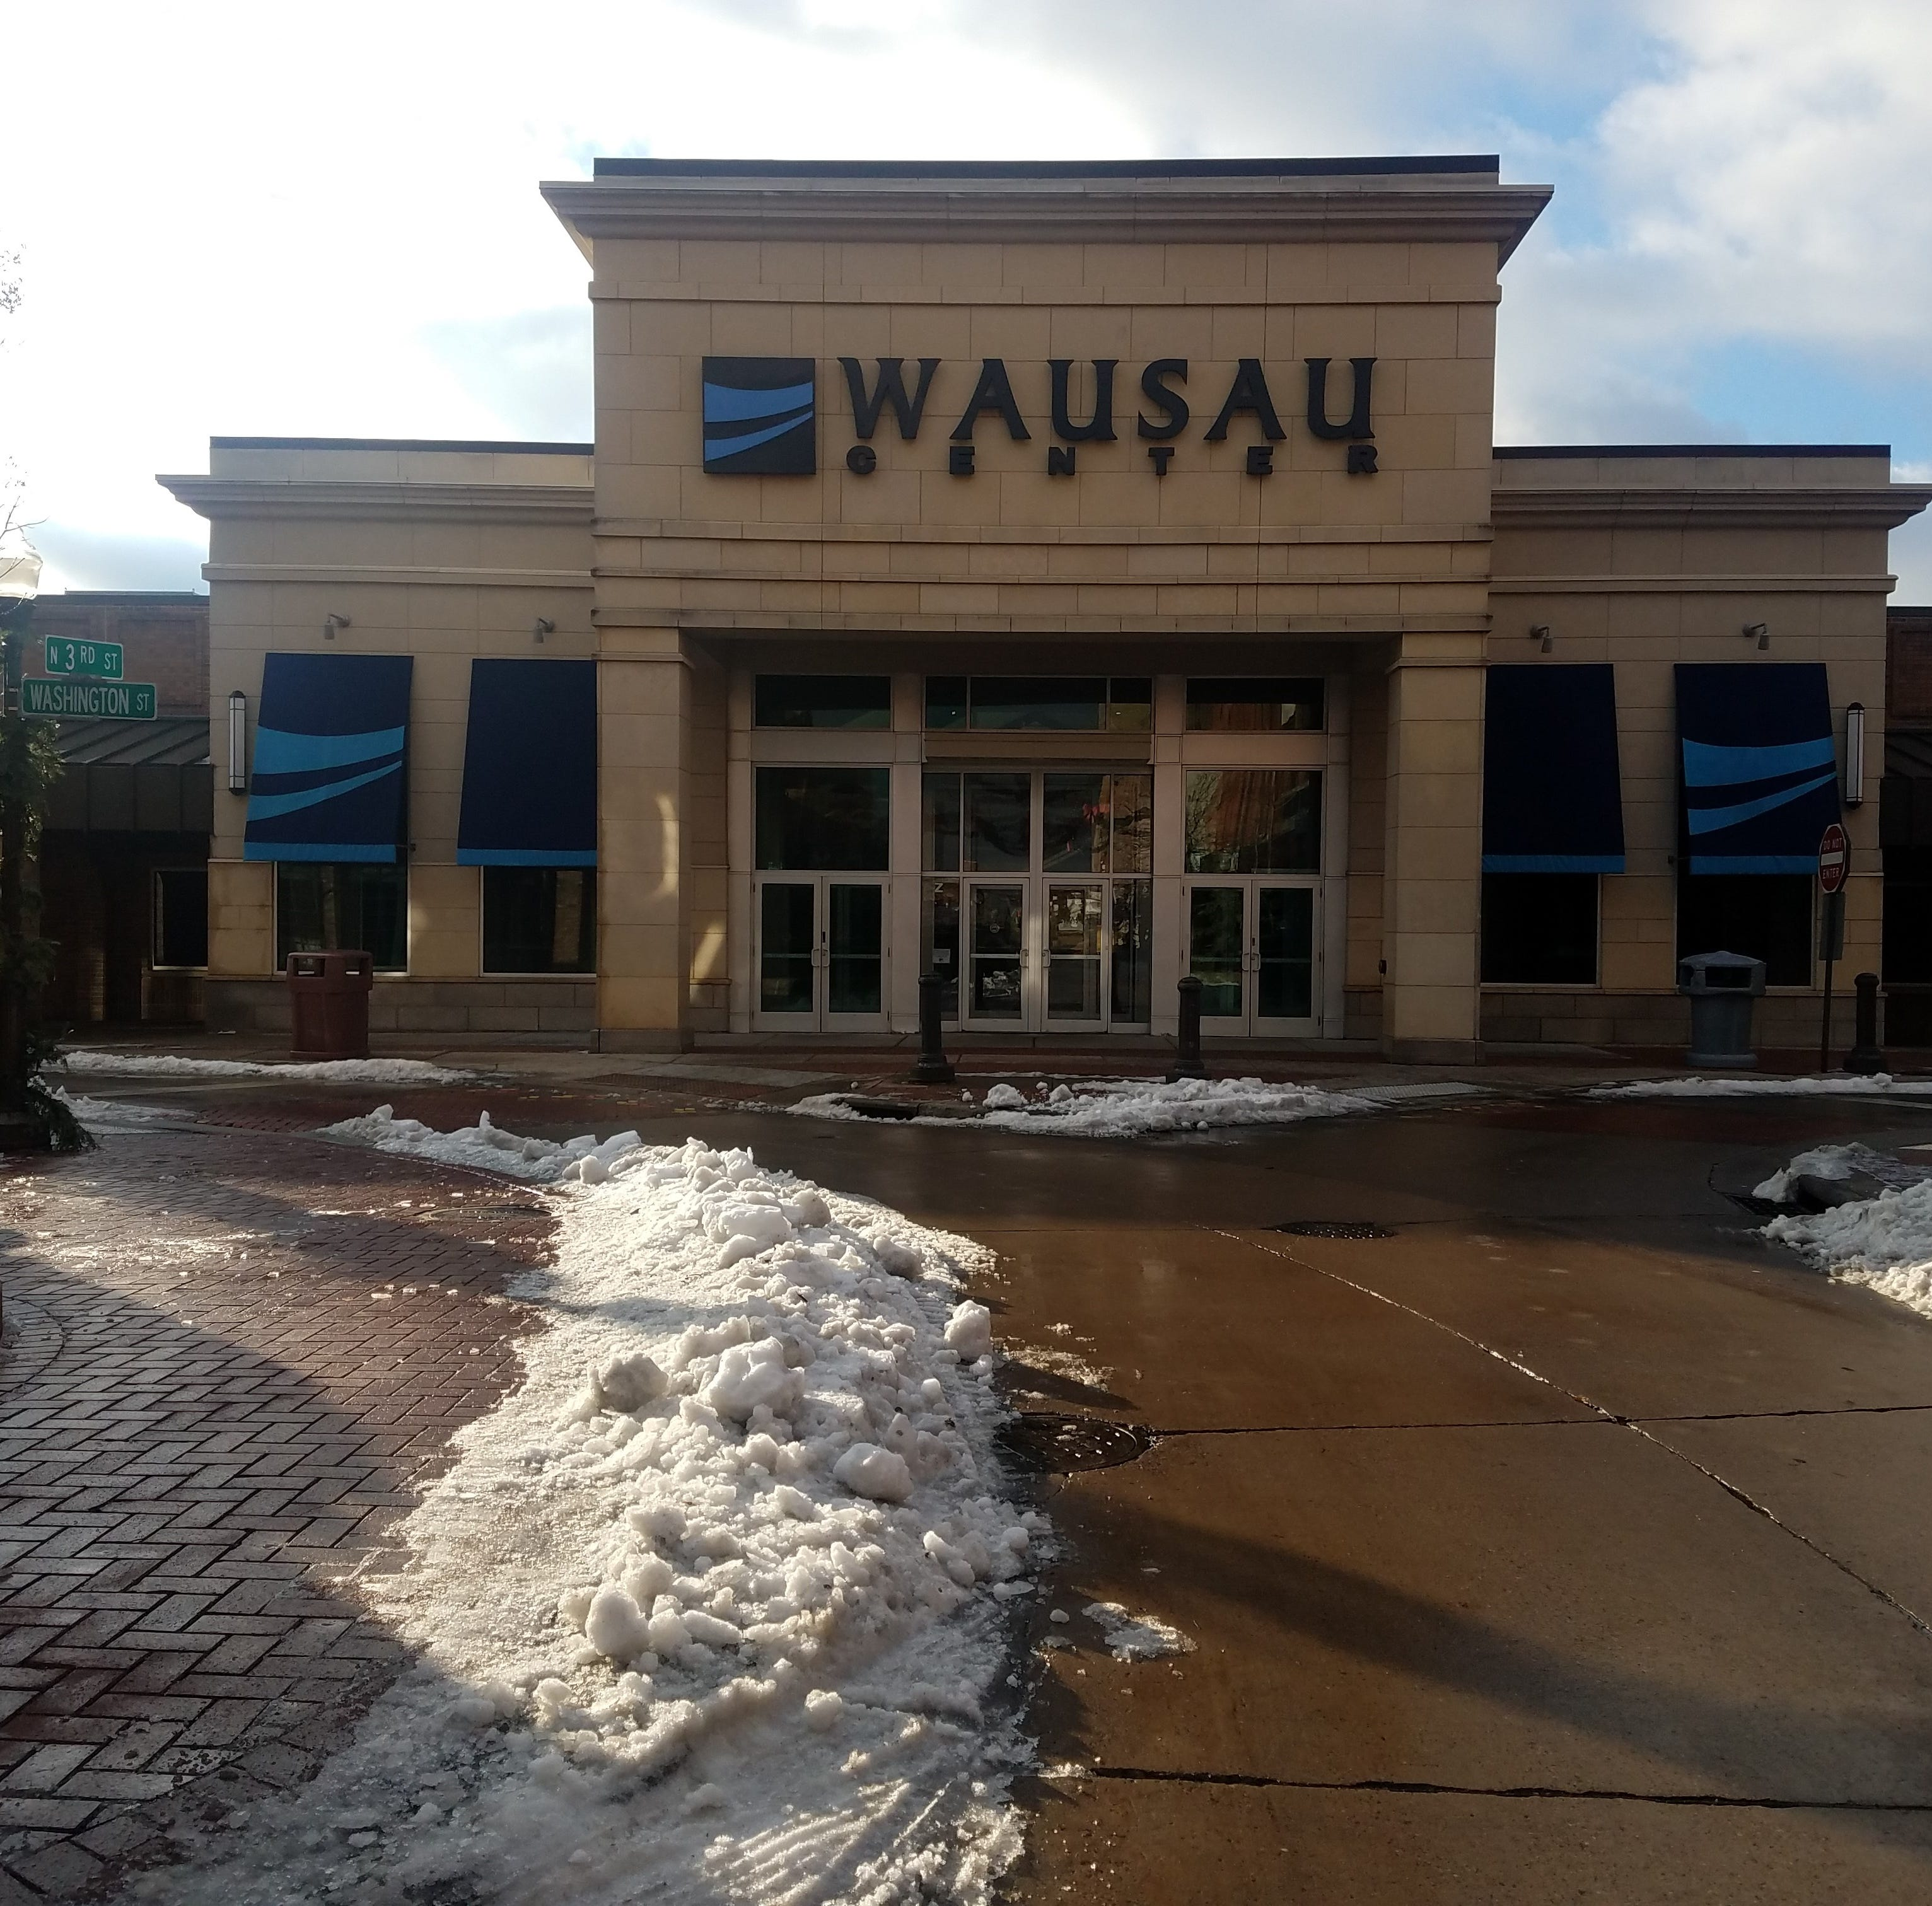 Plover-based developer seeks to buy old Sears space in Wausau Center mall